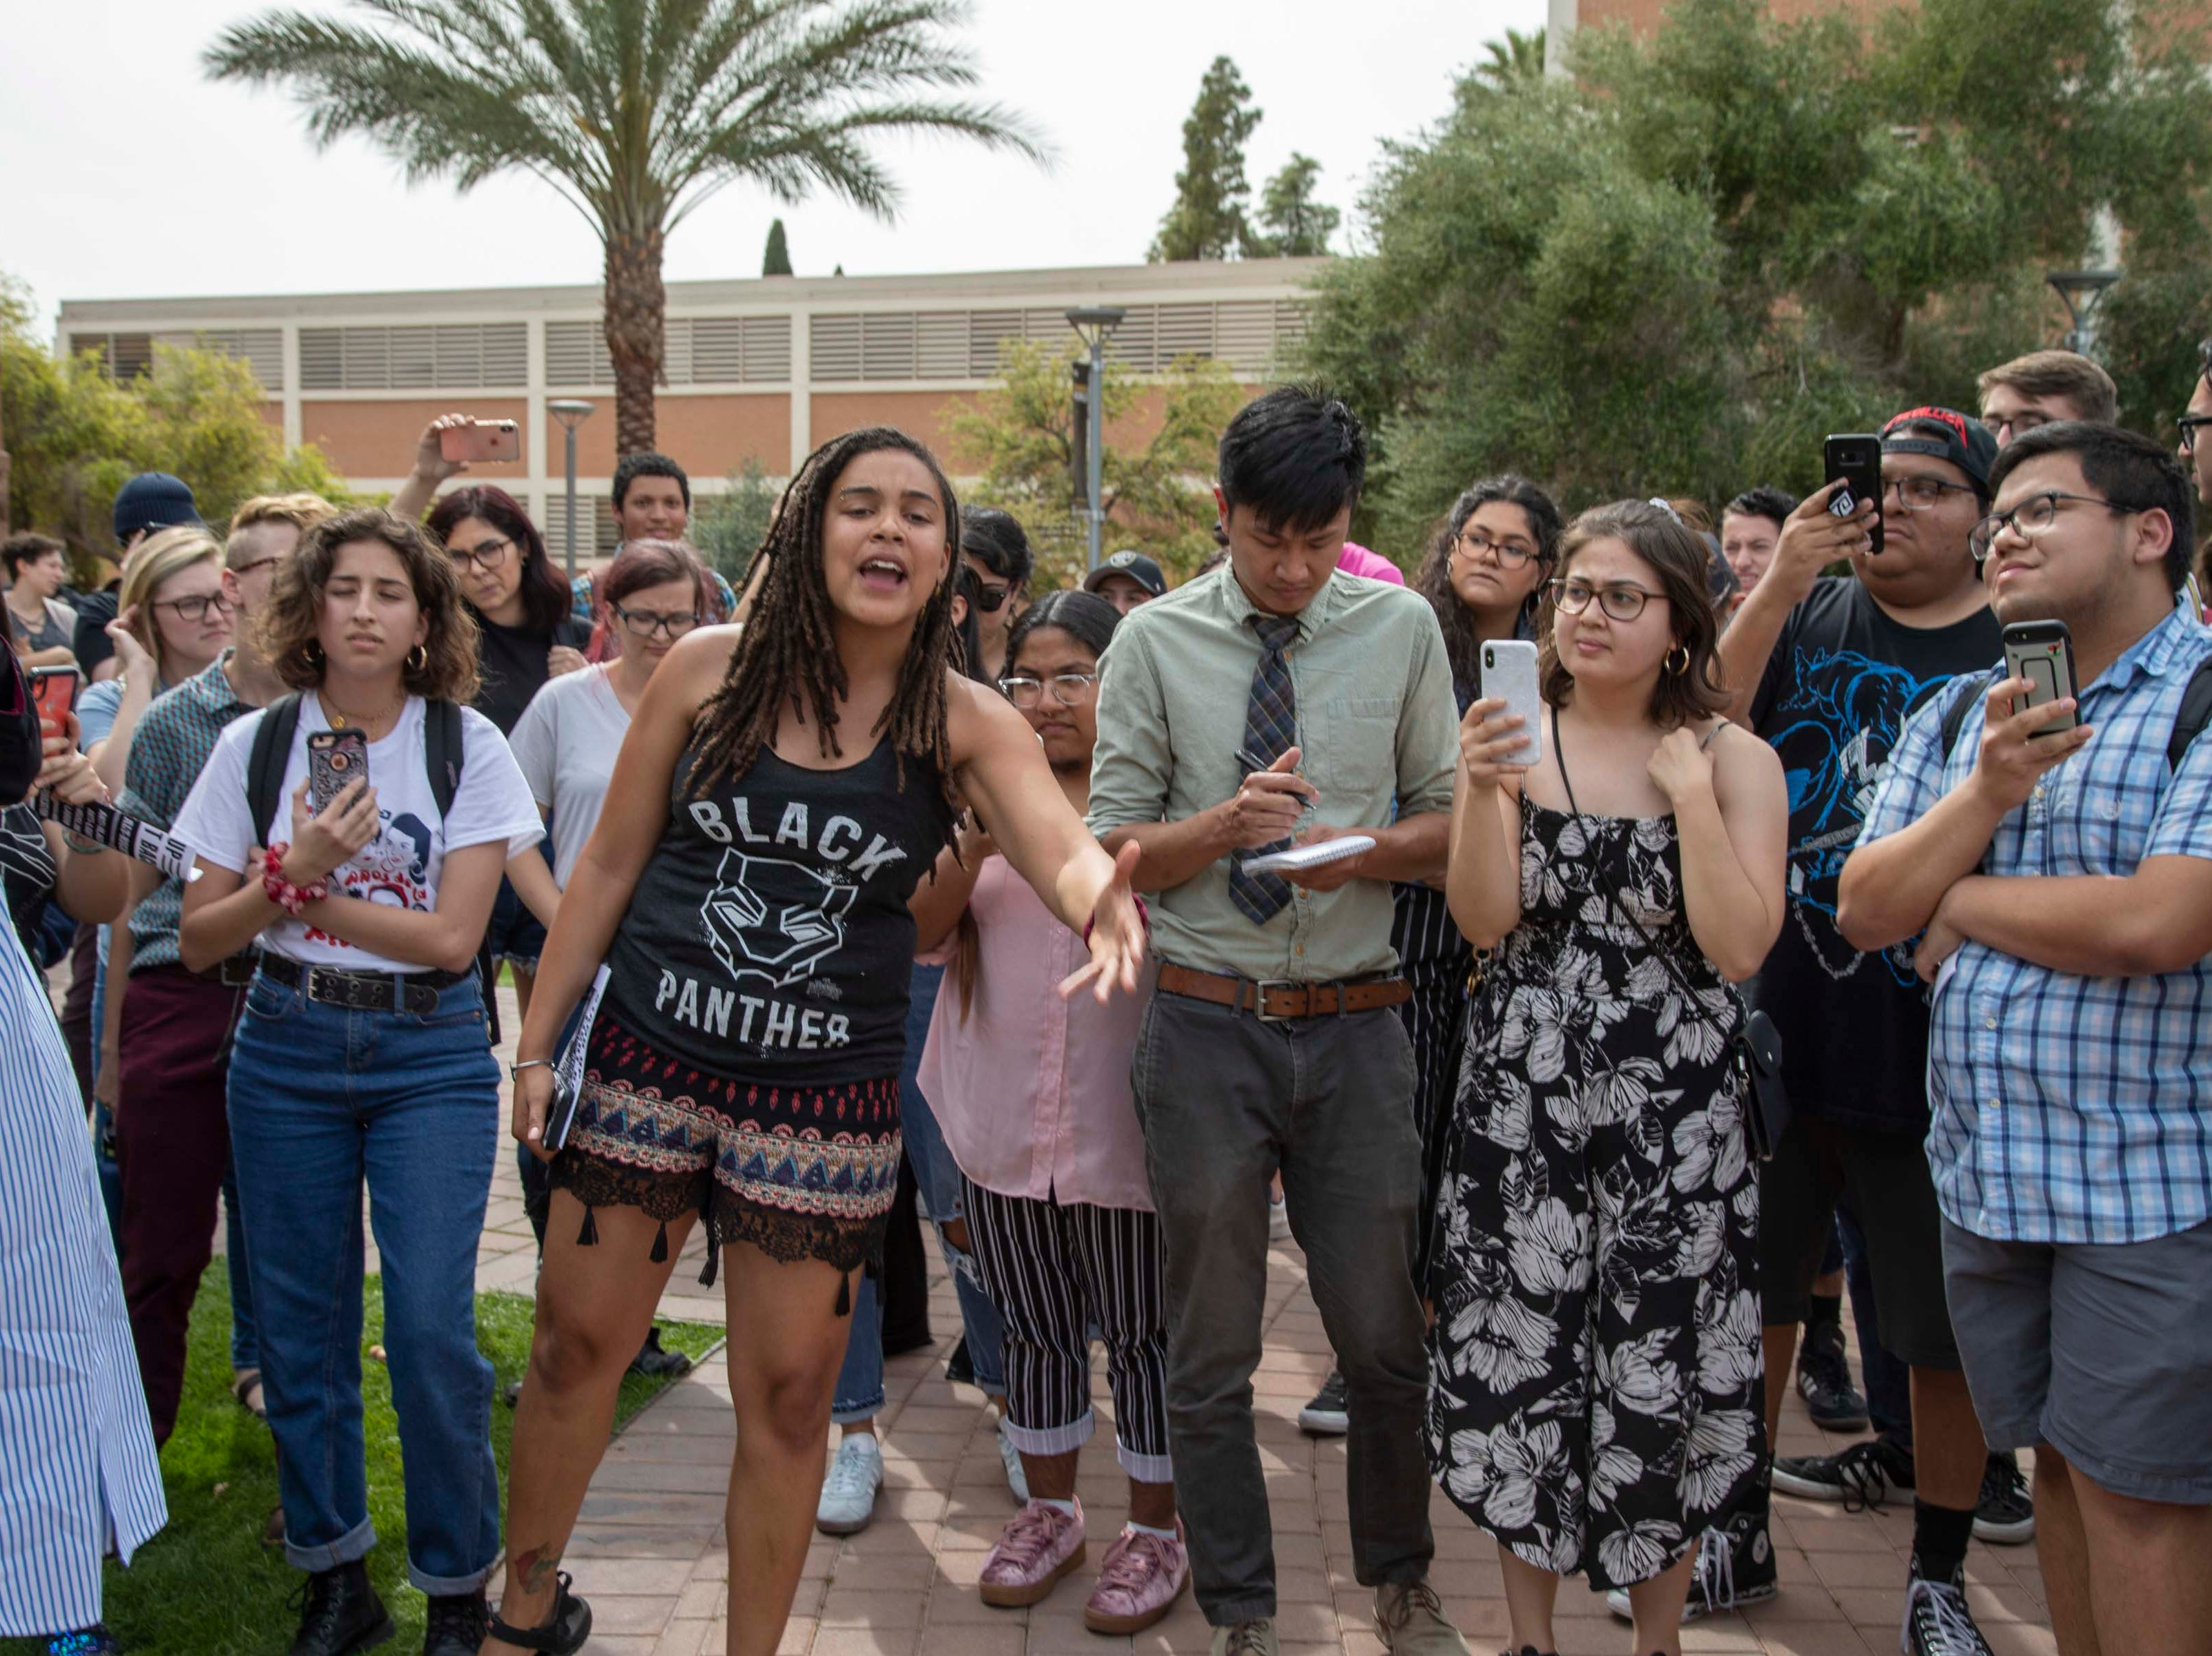 Student protesters yell at leaders of College Republicans United in front of Old Main at ASU on March 26, 2019. Dozens of ASU students came to protest against the College Republicans United group.